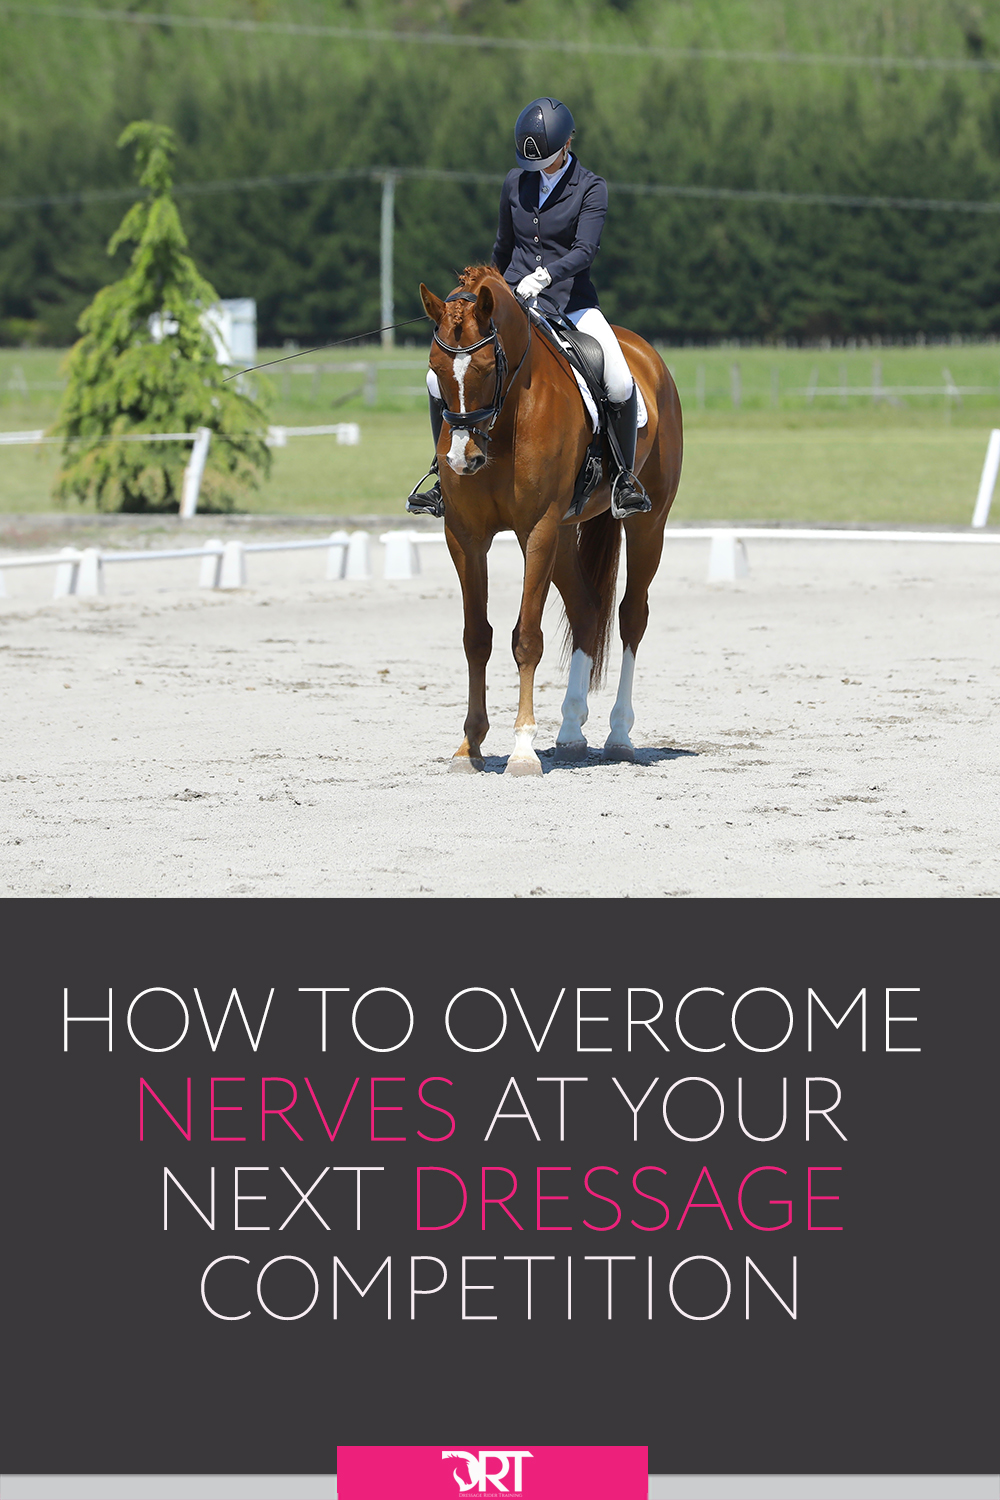 Mastering your competition nerves can really help you to perform at your very best. In this article, I go into detail about what I try to do and give you some tools you can try out for your next competition to reduce nerves.